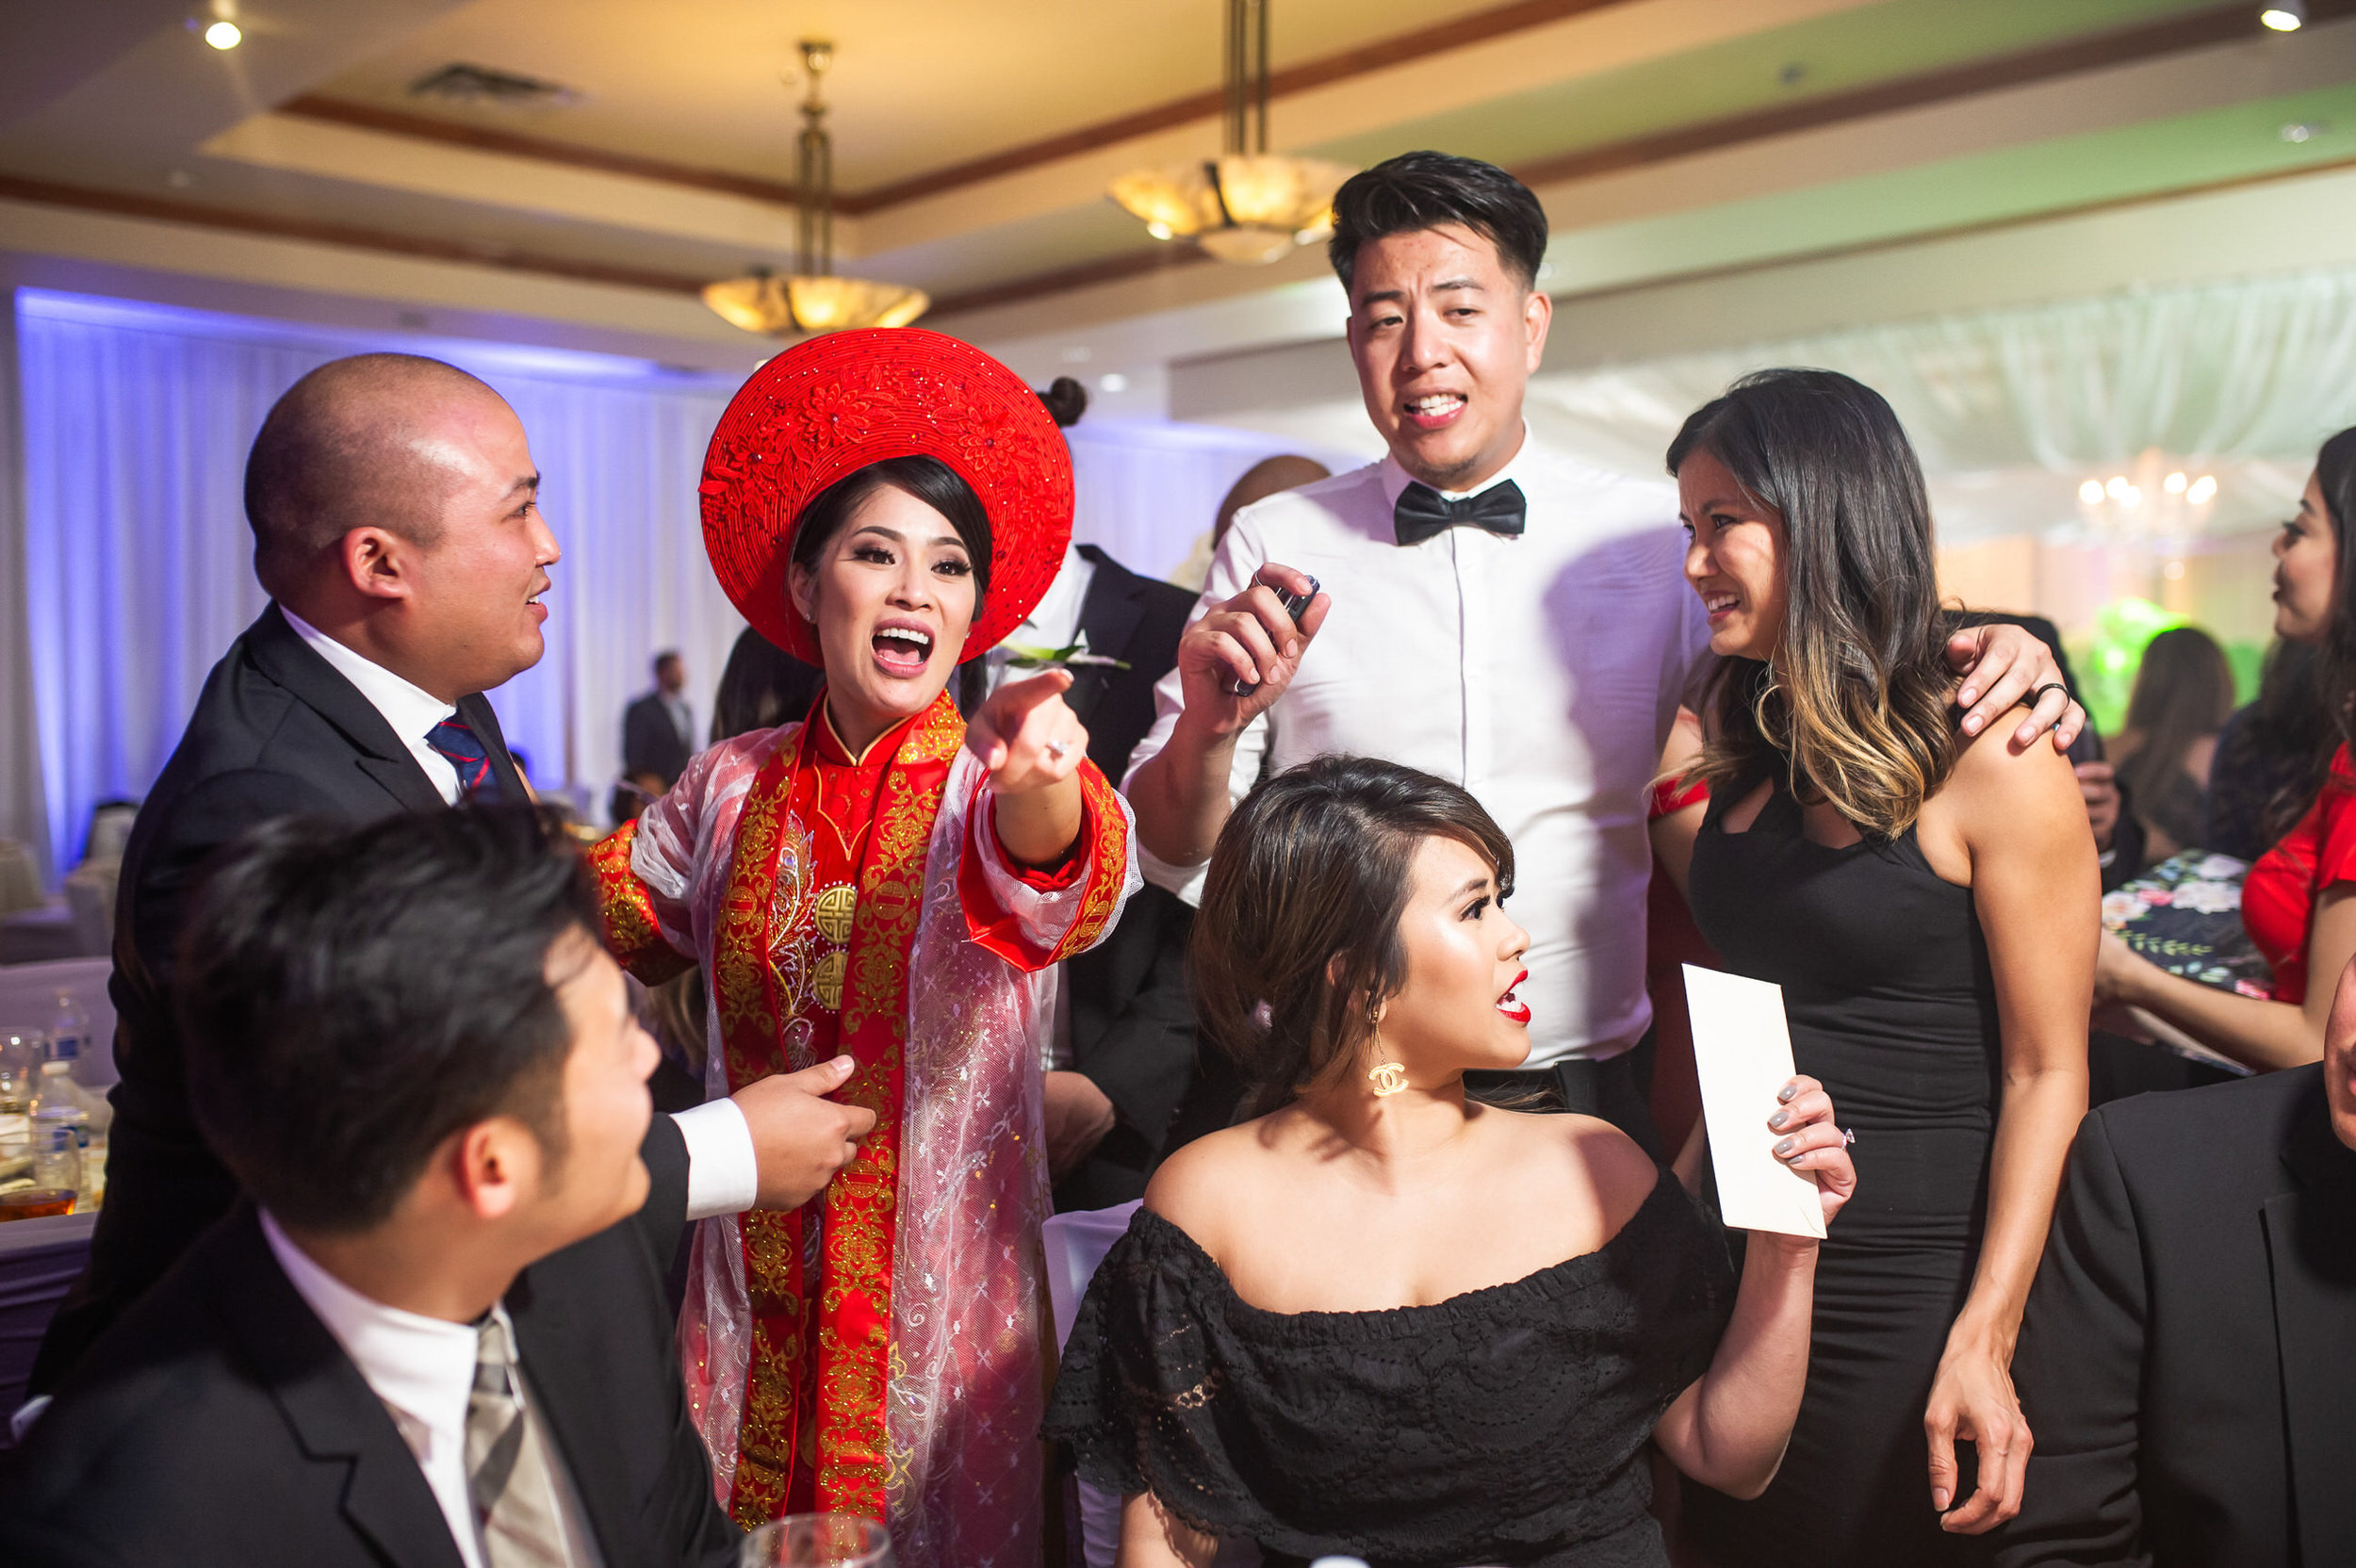 Dream_Wedding_Thanh_Thanh-21860.jpg